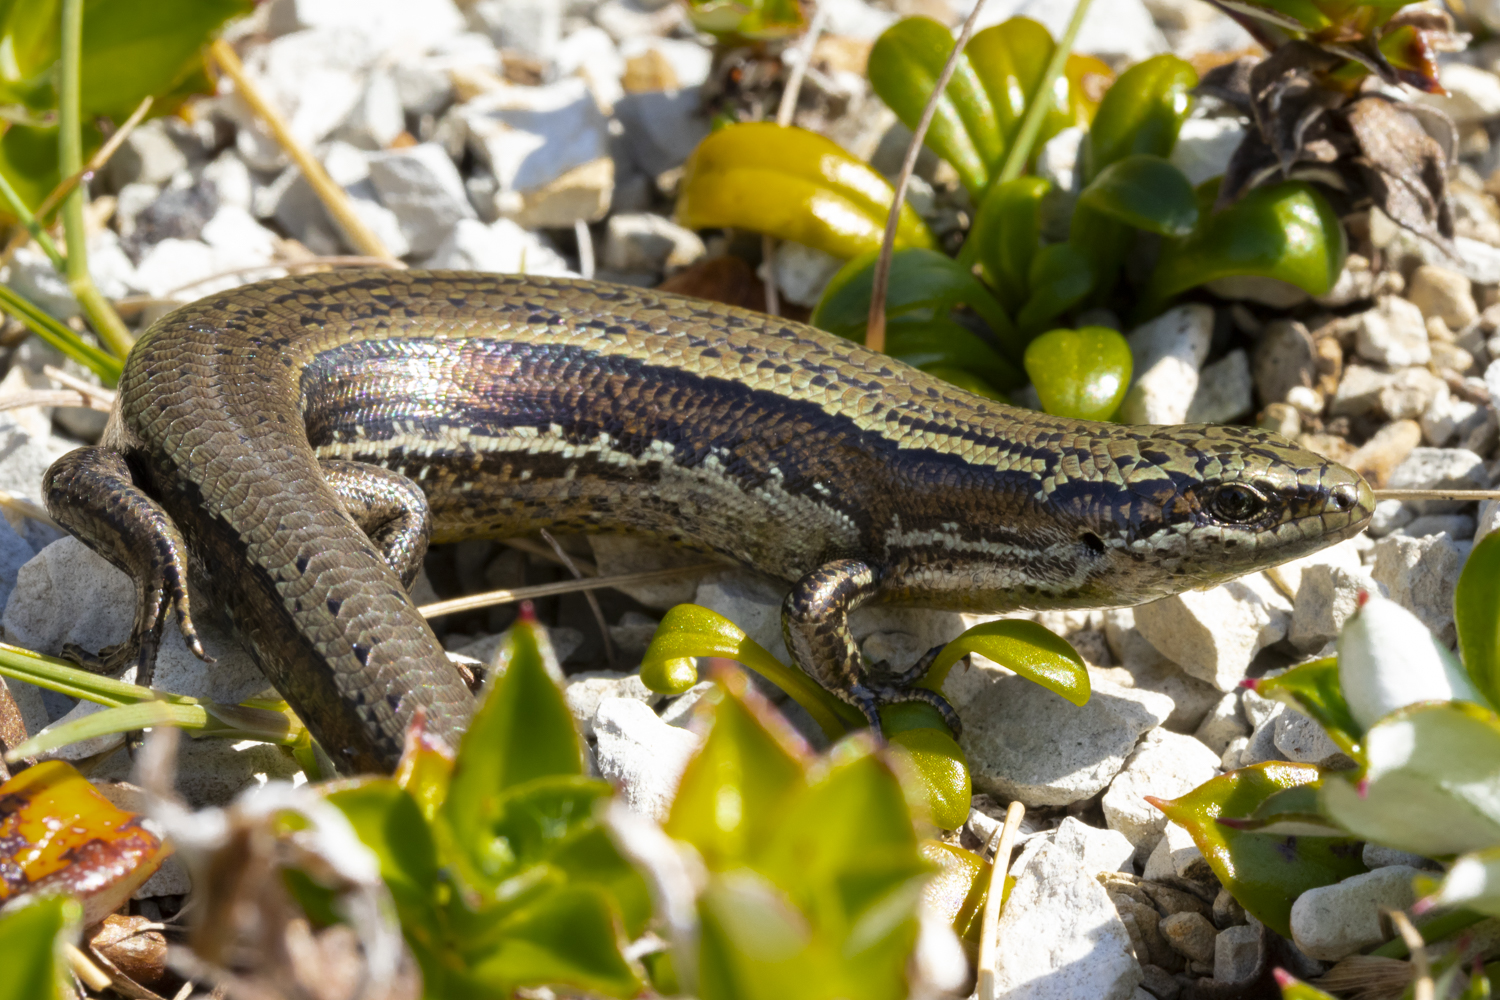 New population of Te Kakahu skink, Fiordland's rarest skink